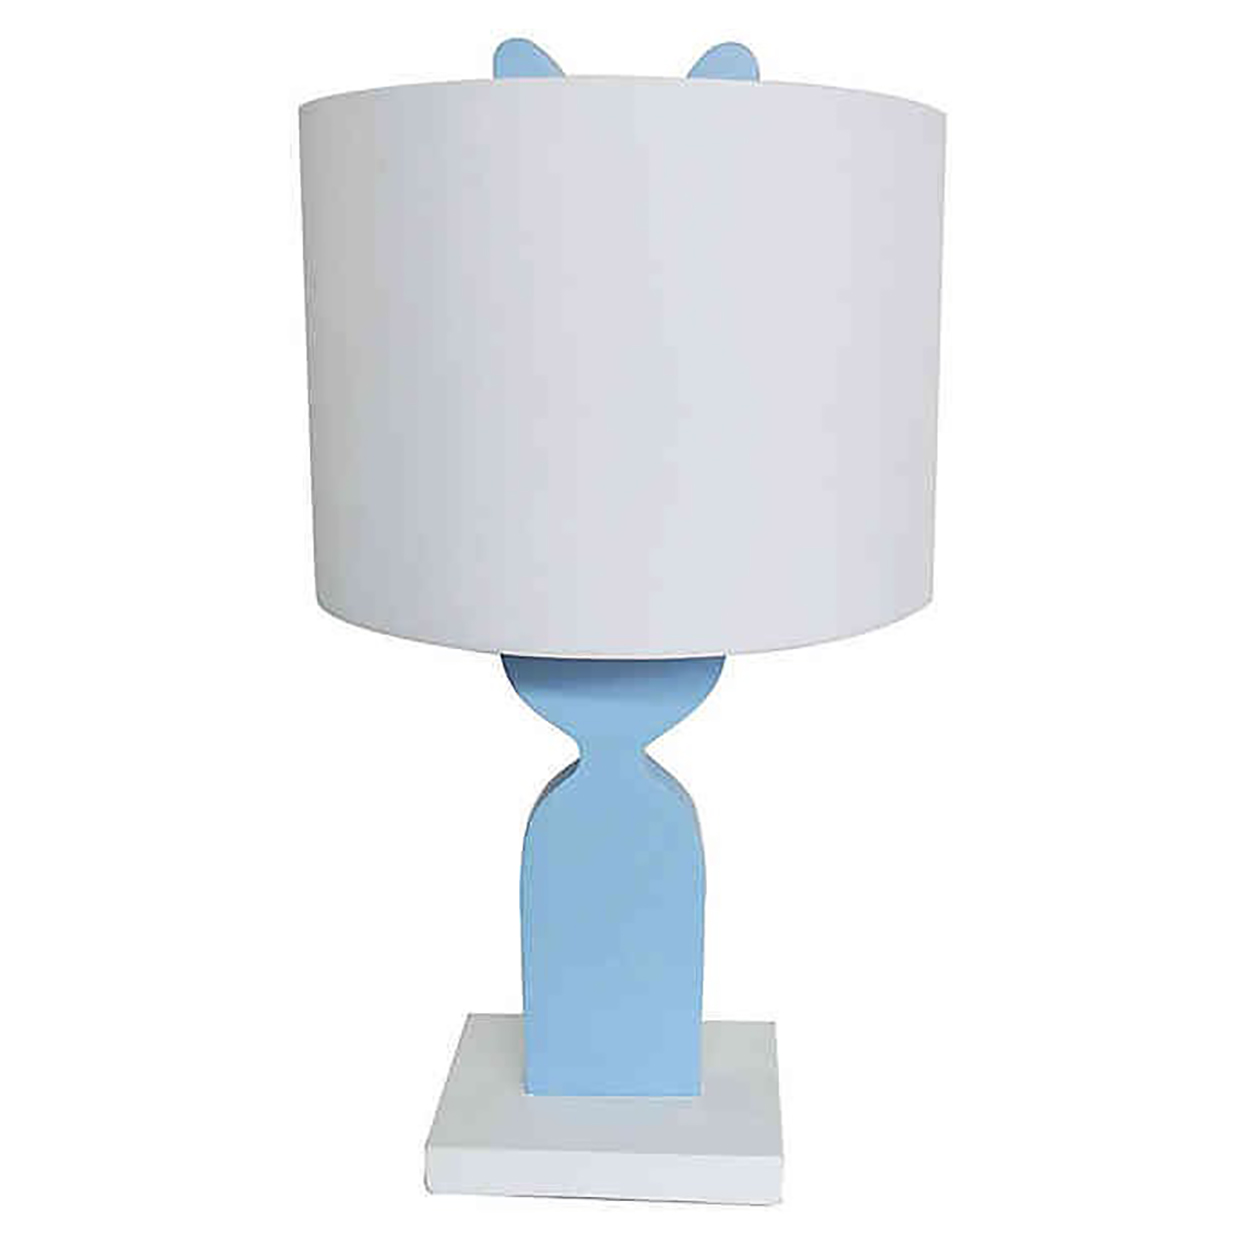 Table lamp with white shade and blue bunny shaped base